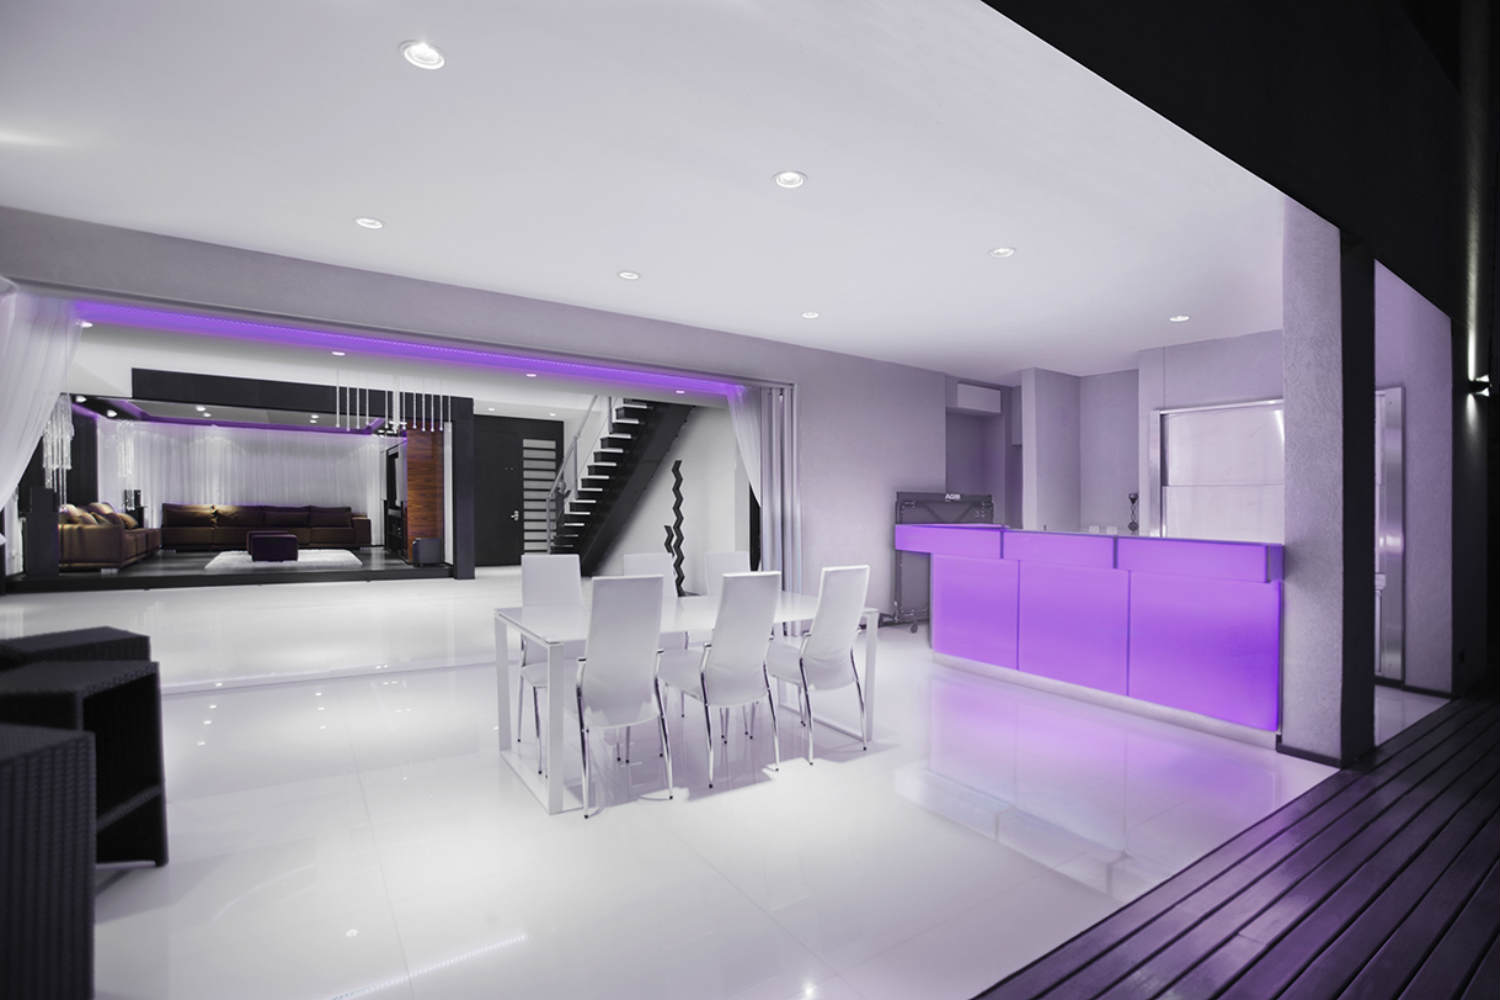 Casa Fontela in Buenos Aires, Argentina designed by WSDG. Dining room changes color with integrated invisible indirect LED lighting.